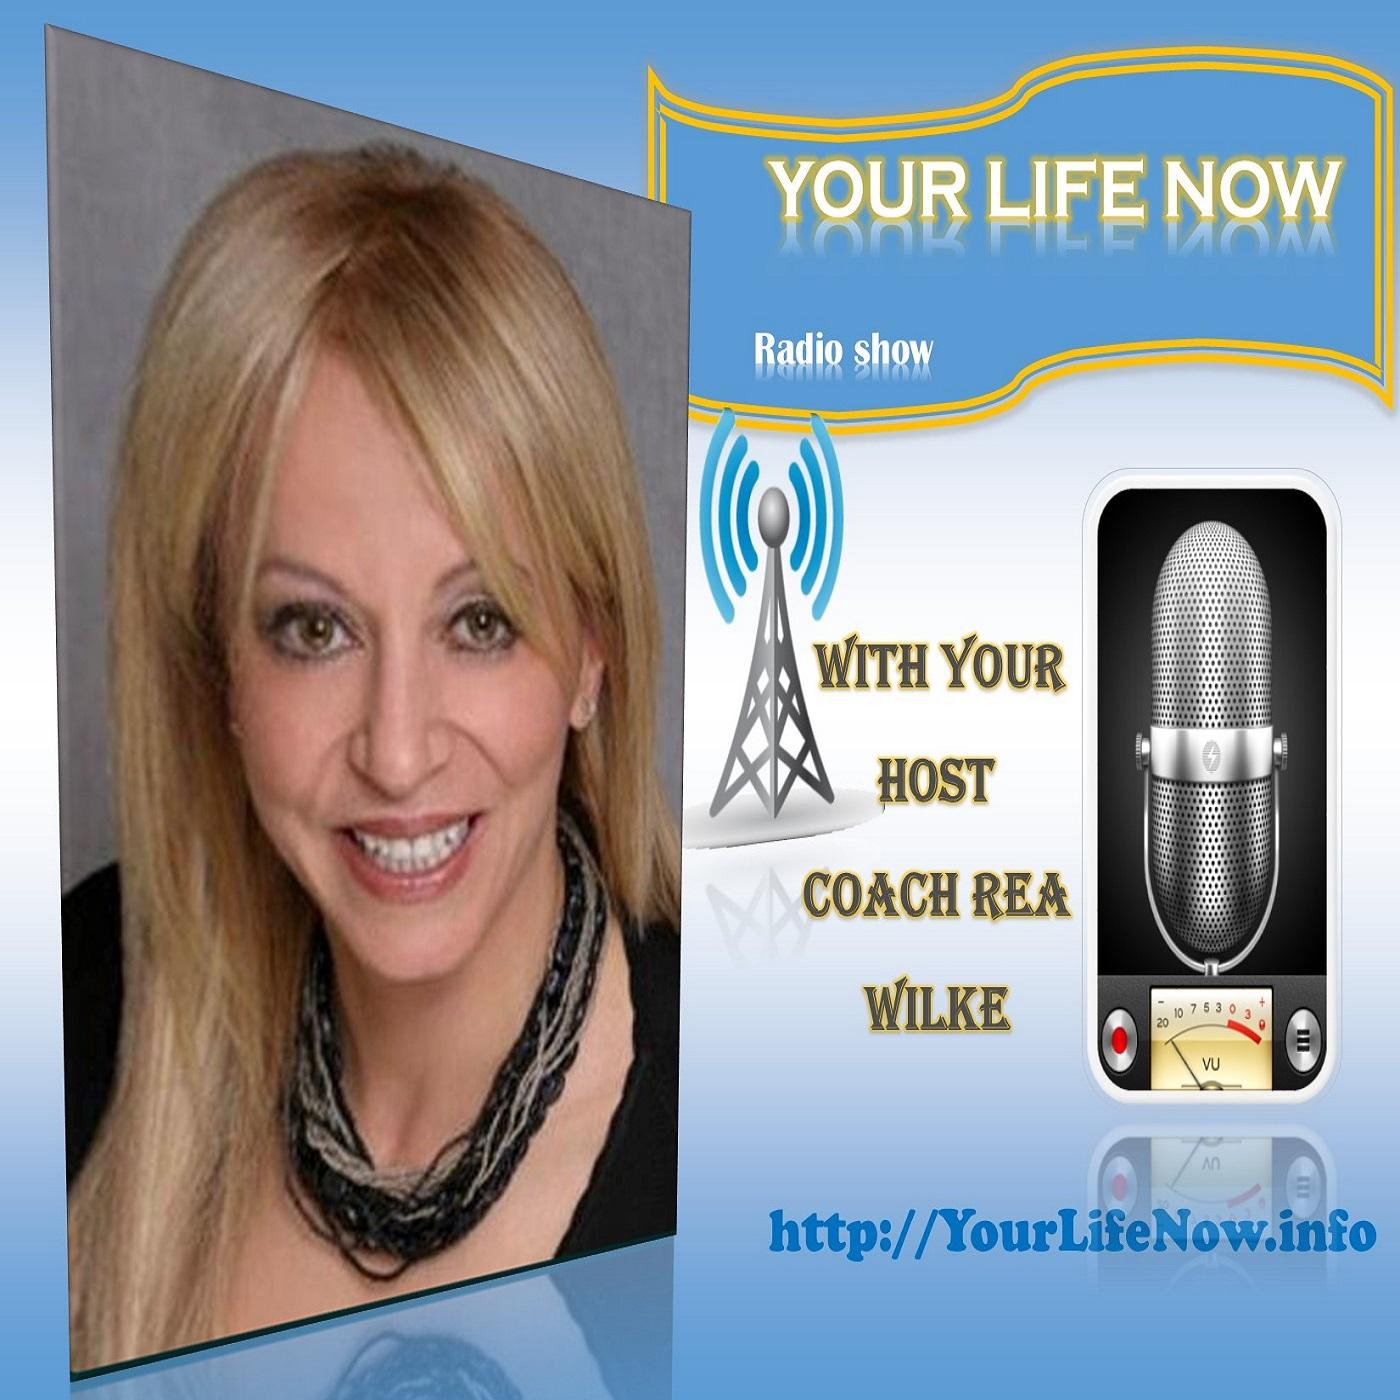 YOUR LIFE NOW Radio show with Coach Rea Wilke